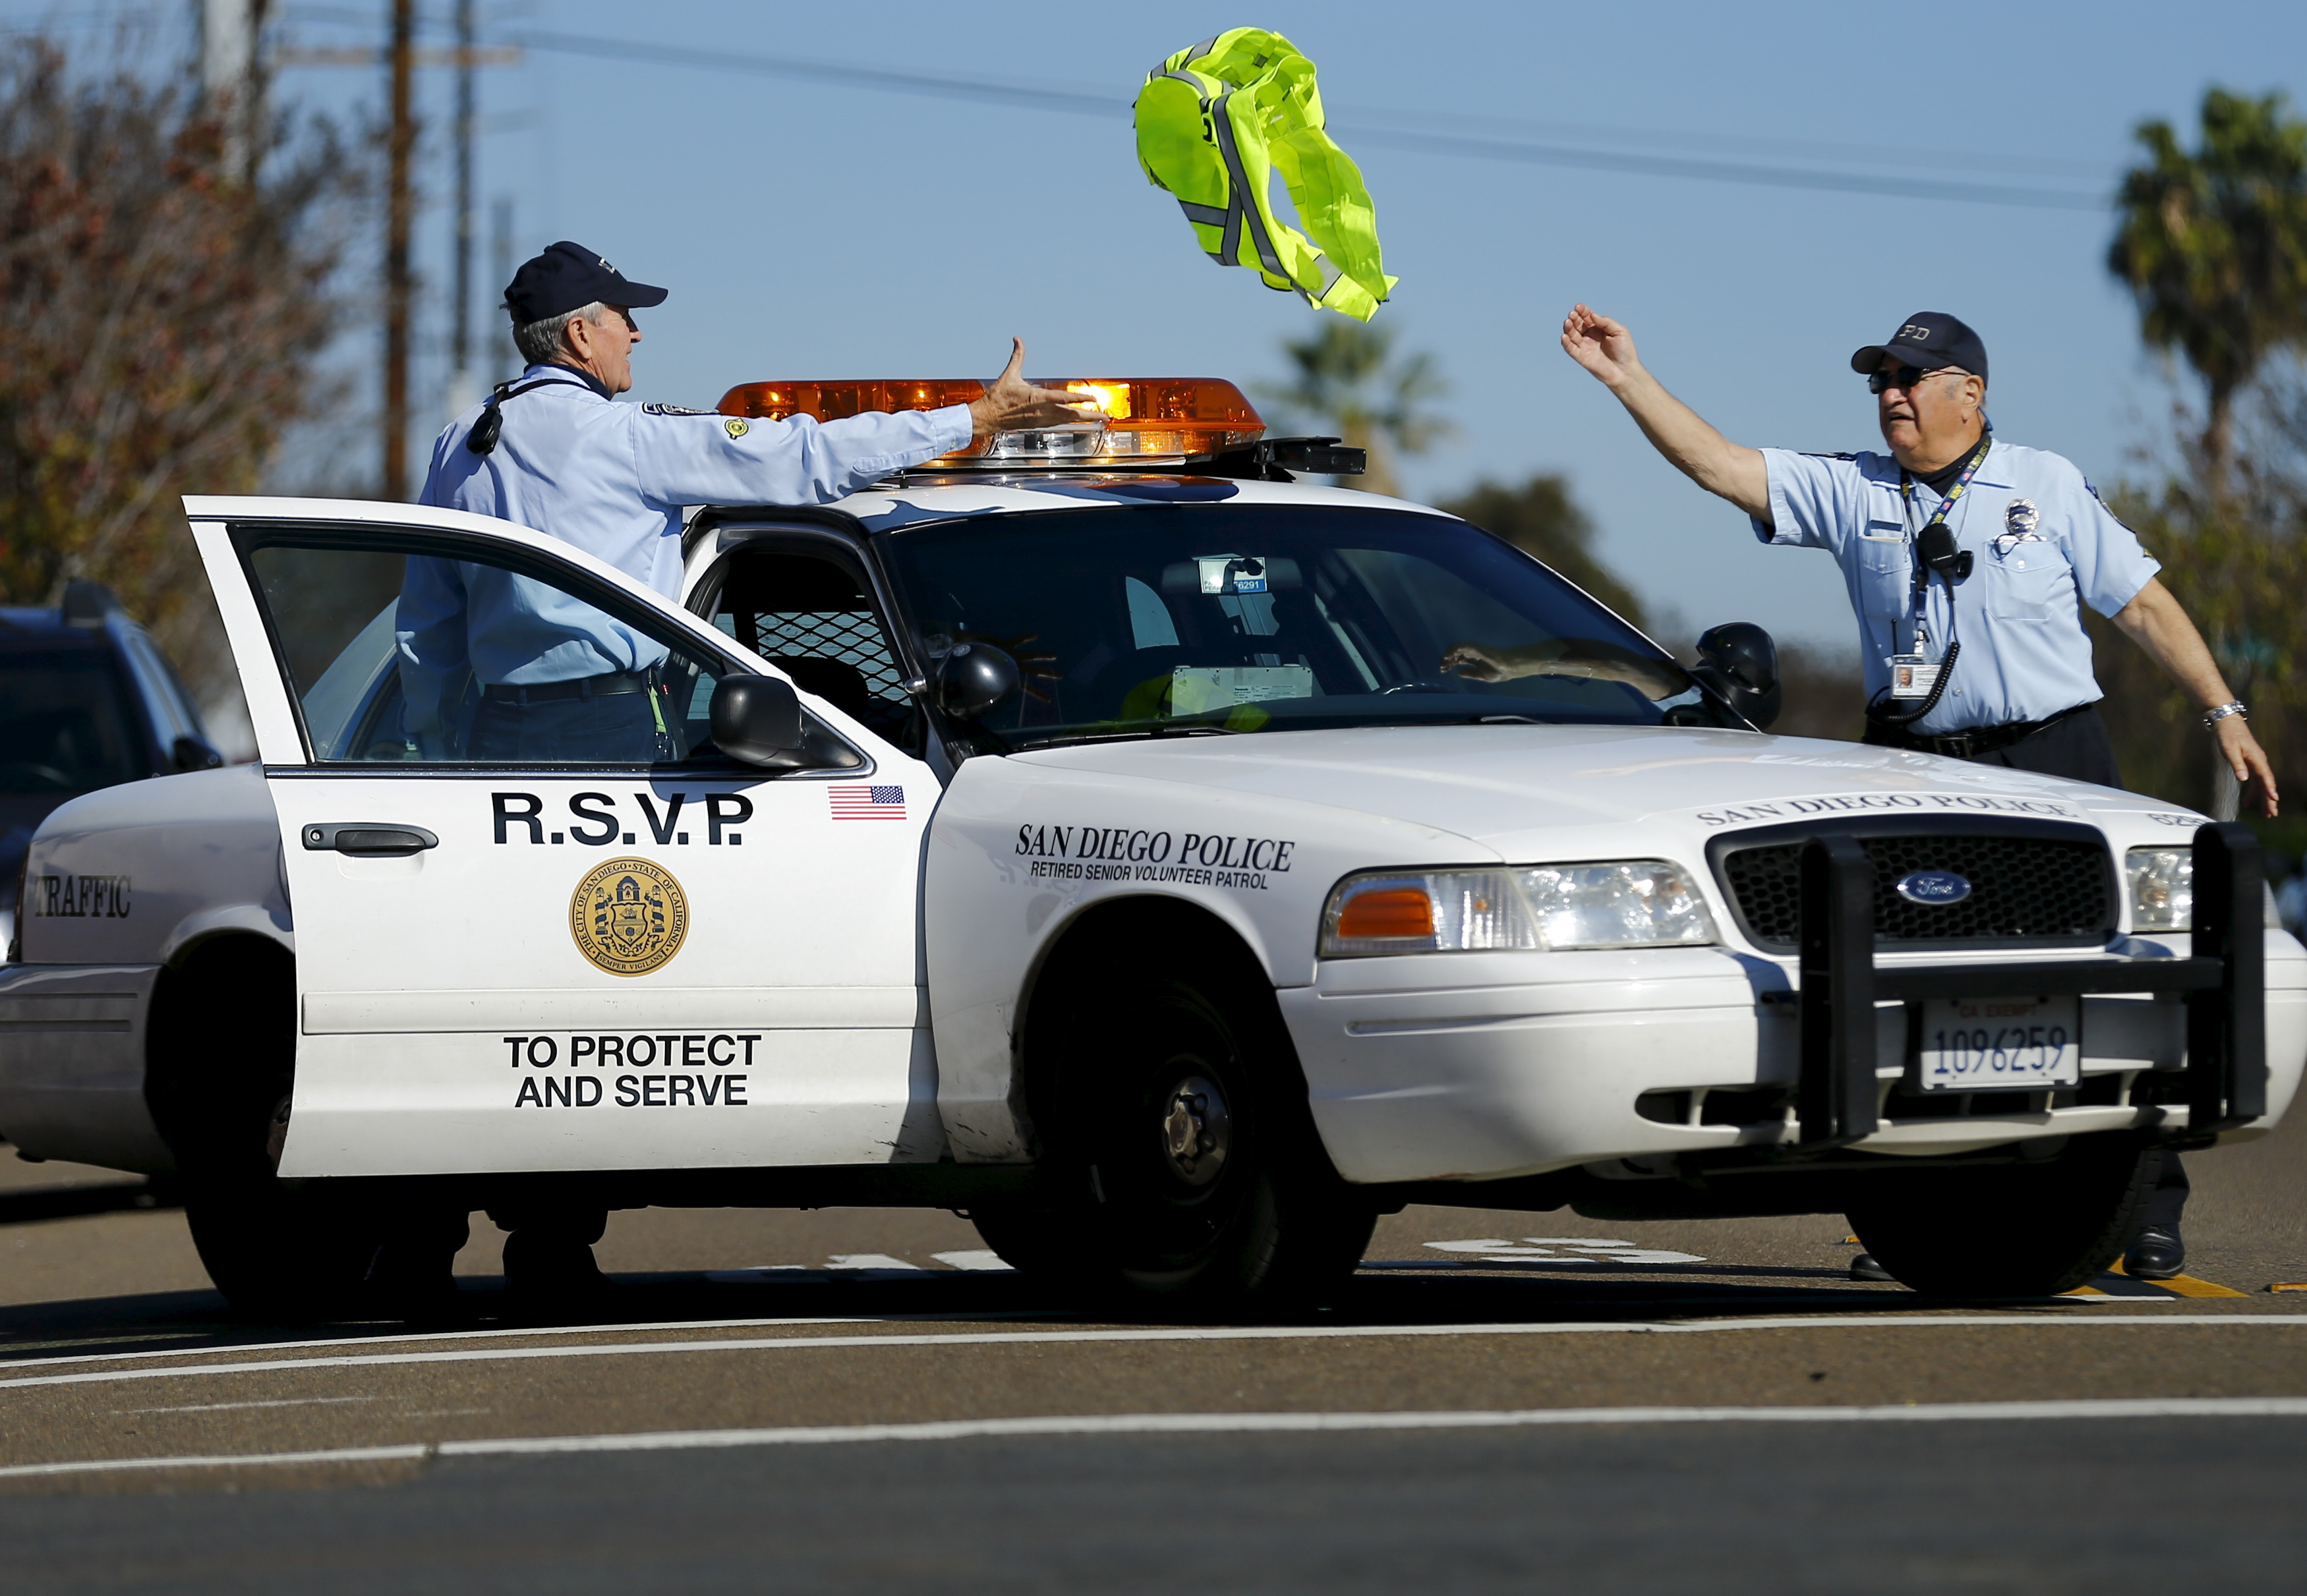 88-year-old Ed Robles (R) throws a safety vest to partner Dick Engel after directing traffic at the scene of a car accident, February 4, 2015. Photo by Mike Blake/Reuters